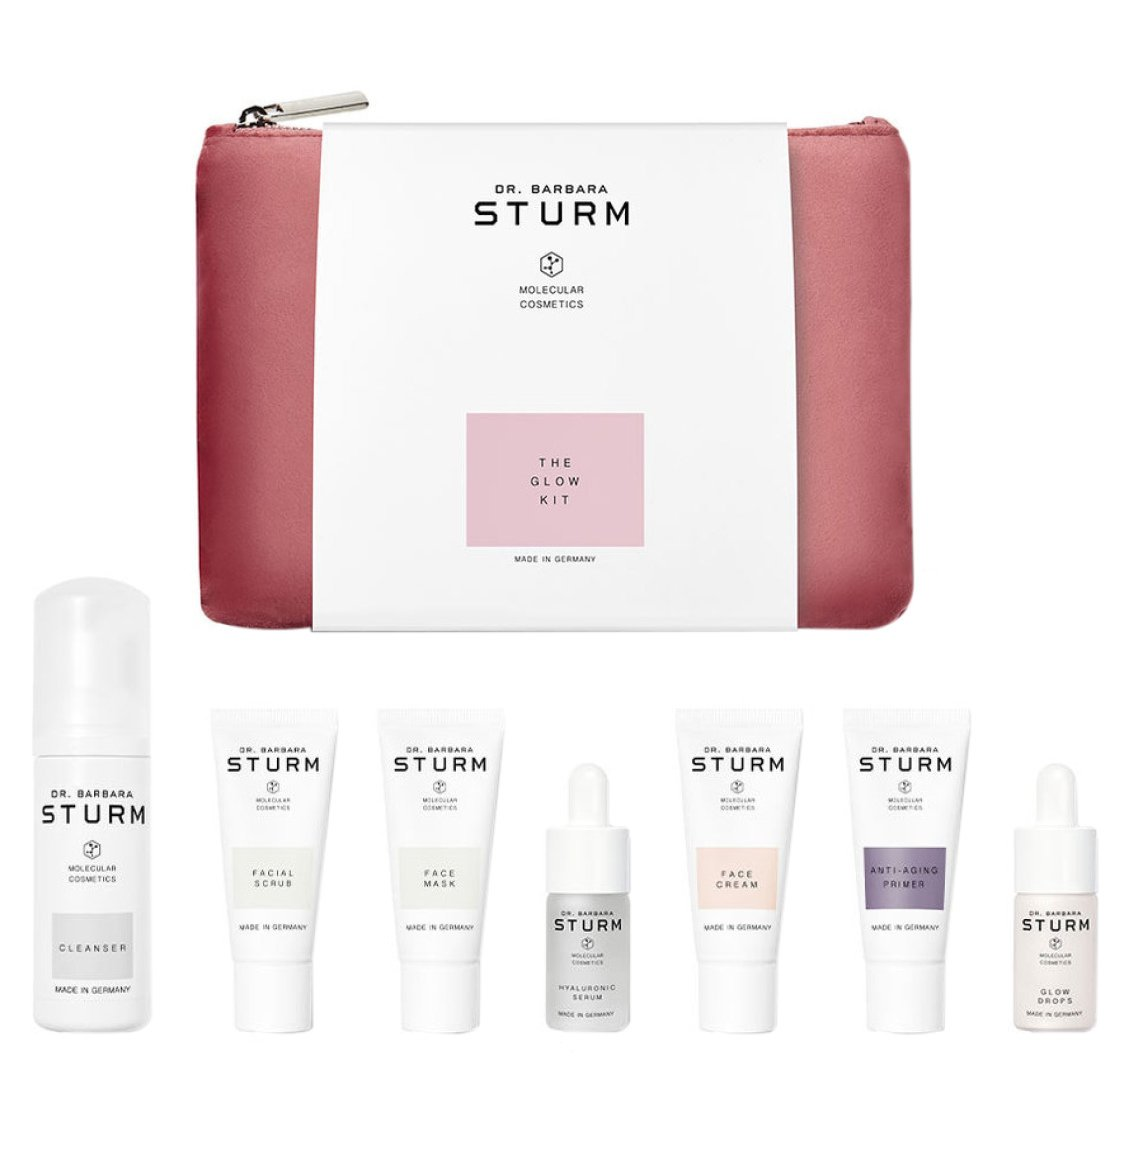 Dr. Barbara Sturm The Glow Kit Cleanser 50ml Facial Scrub 20ml Face Mask 20ml Hyaluronic Serum 10ml Brightening Face Cream 20ml Anti-Aging Primer 20ml Glow Drops 10ml